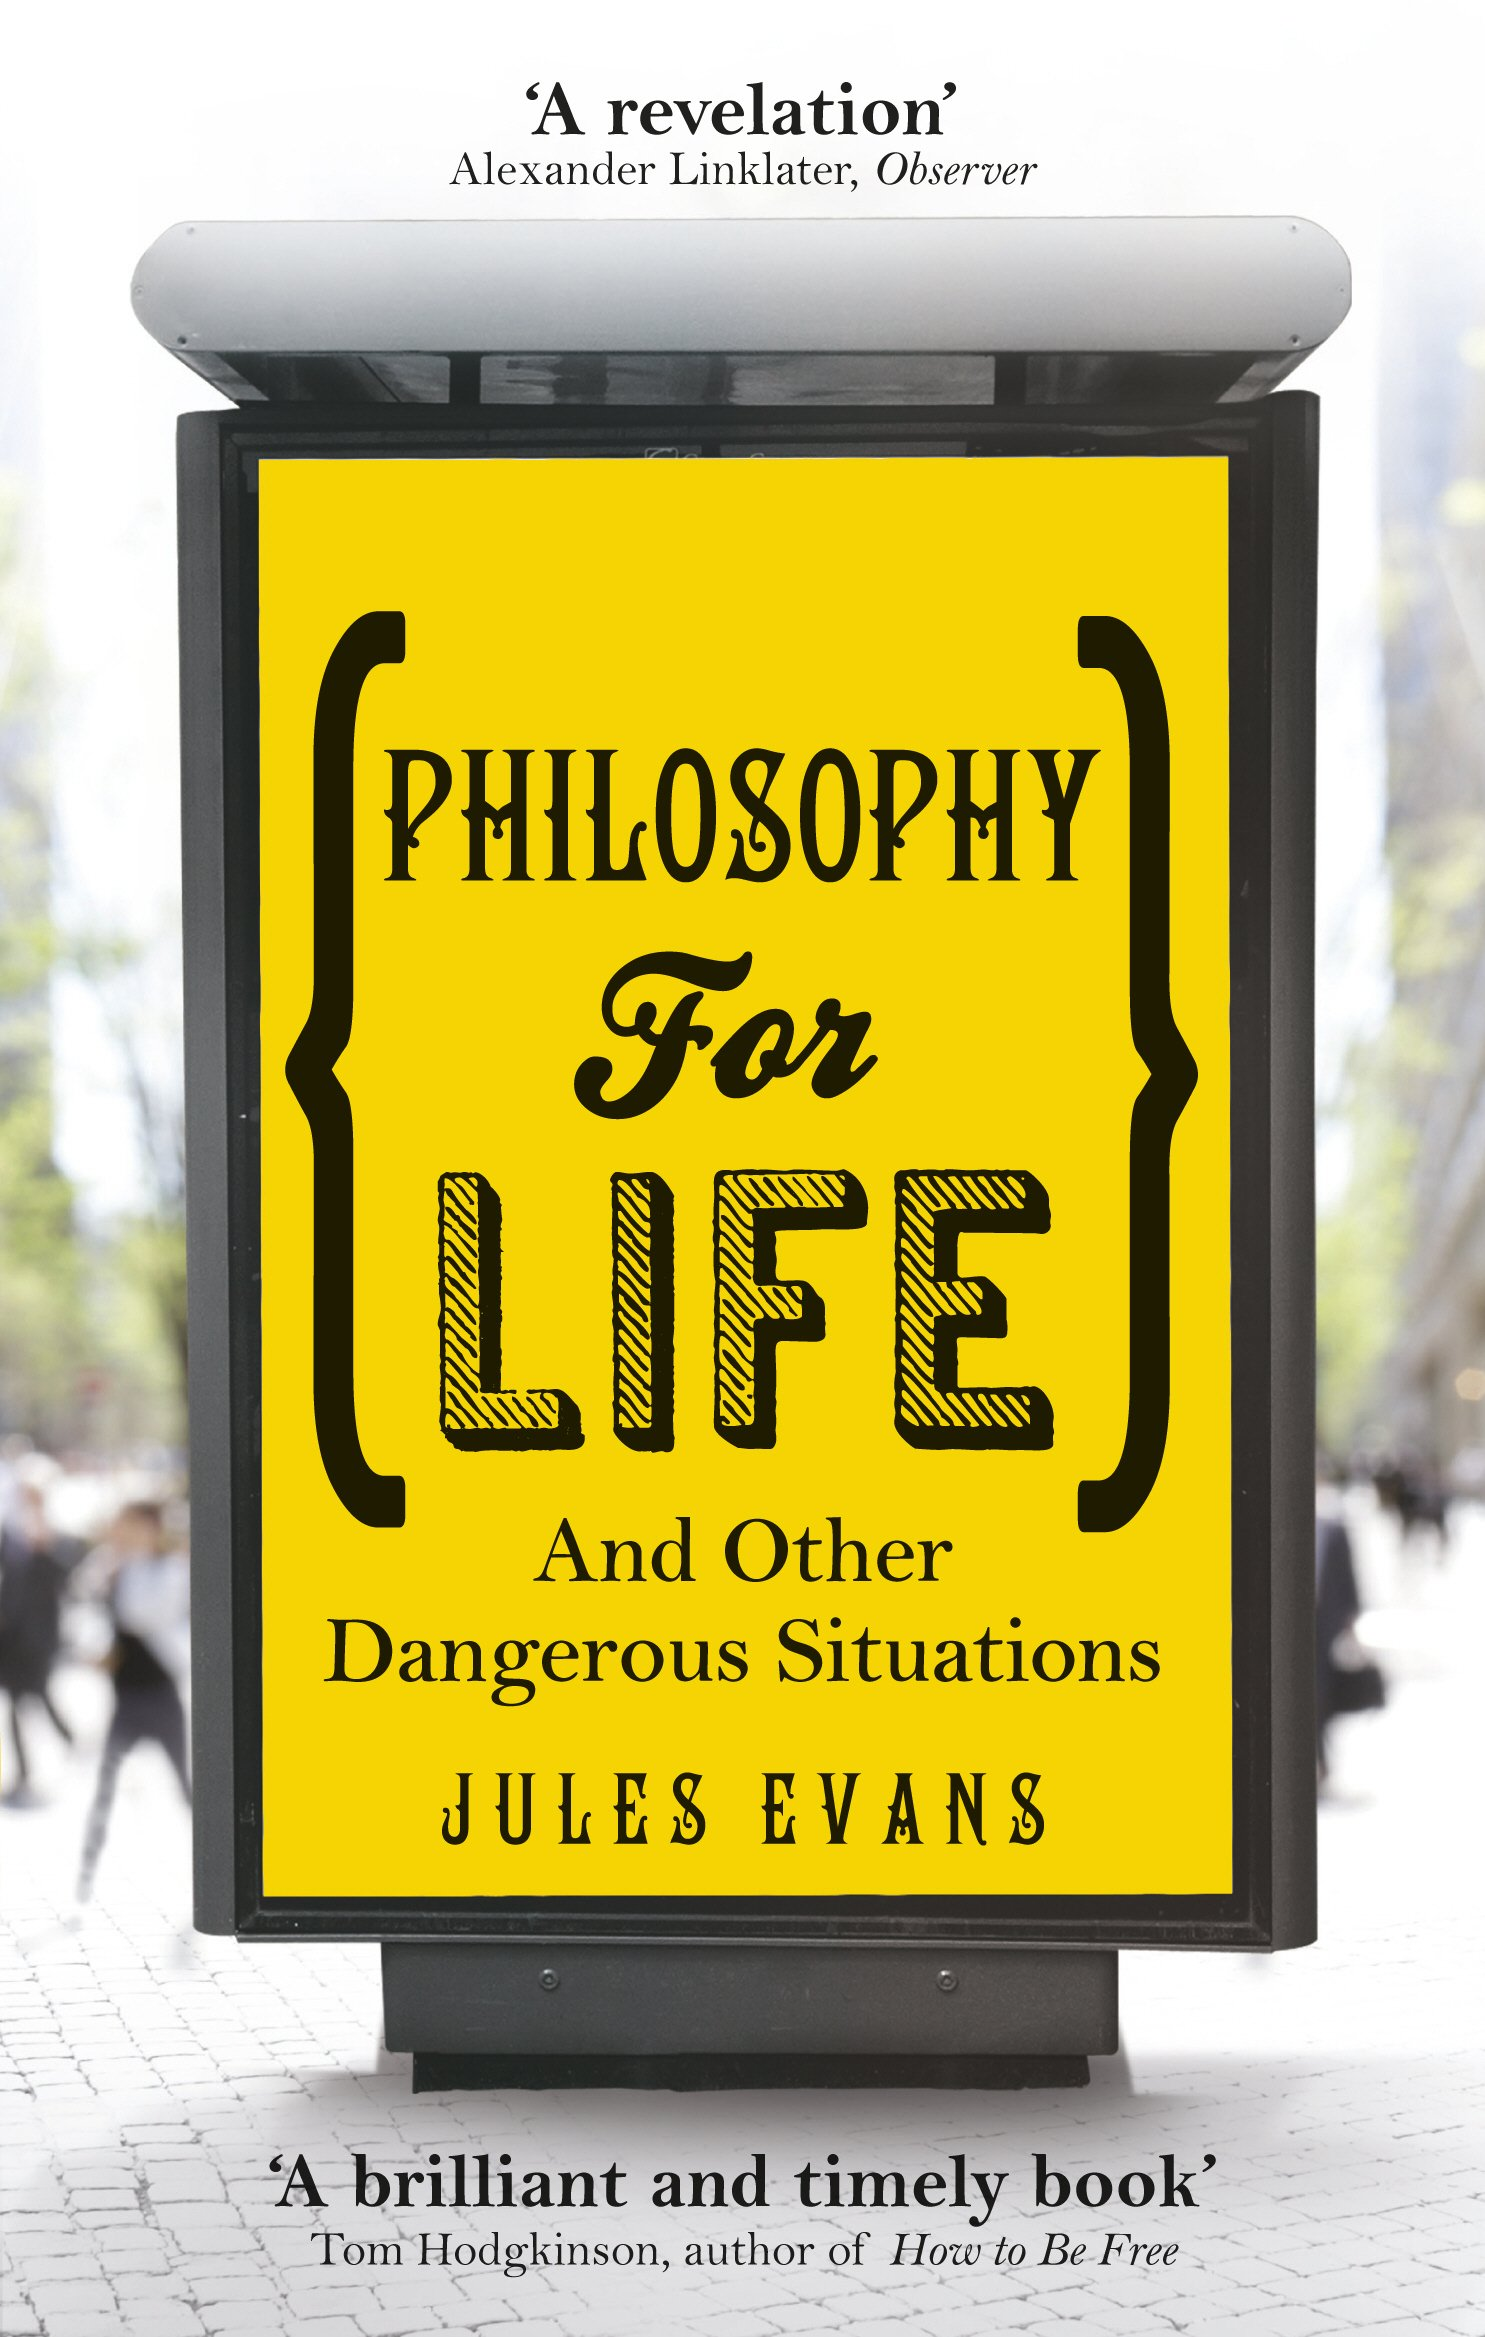 philosophy-for-life-and-other-dangerous-situations.jpg